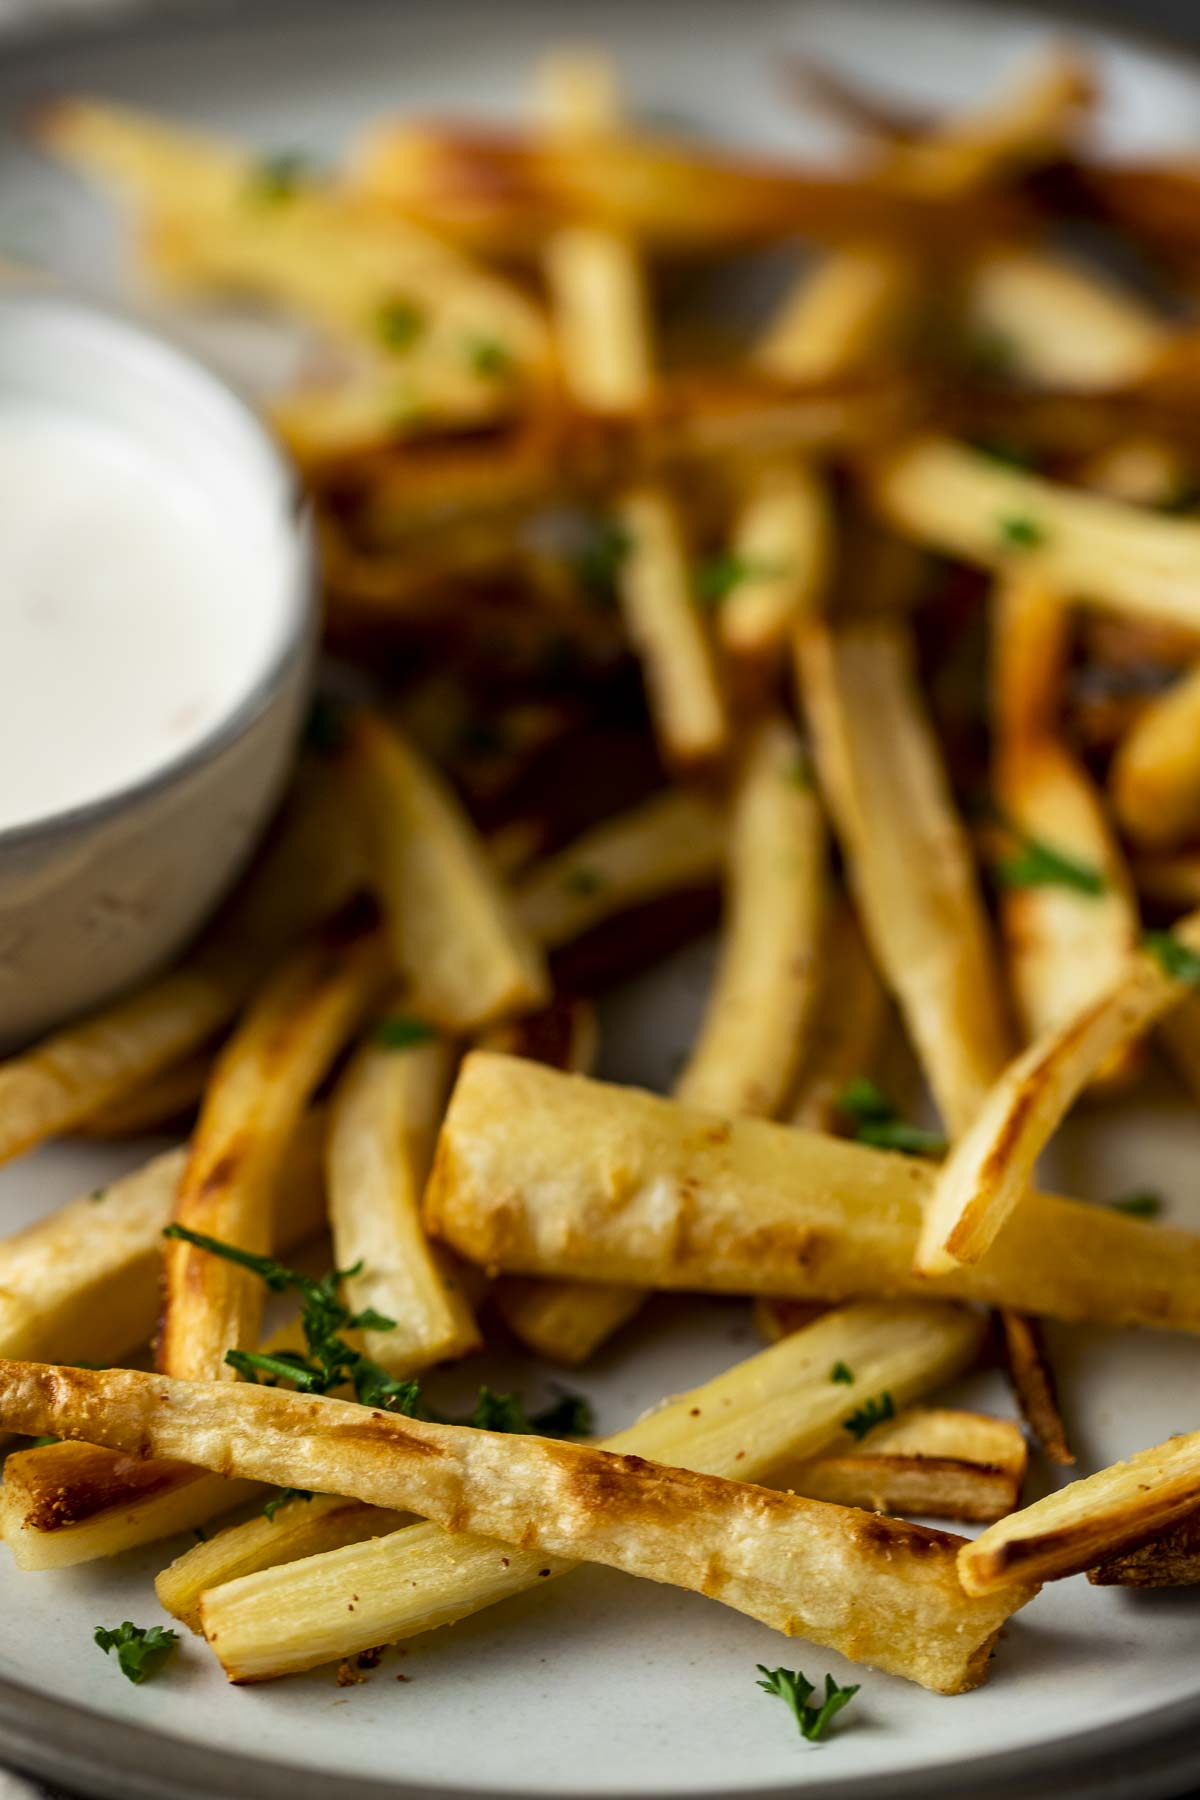 french fries with dipping sauce in a side bowl